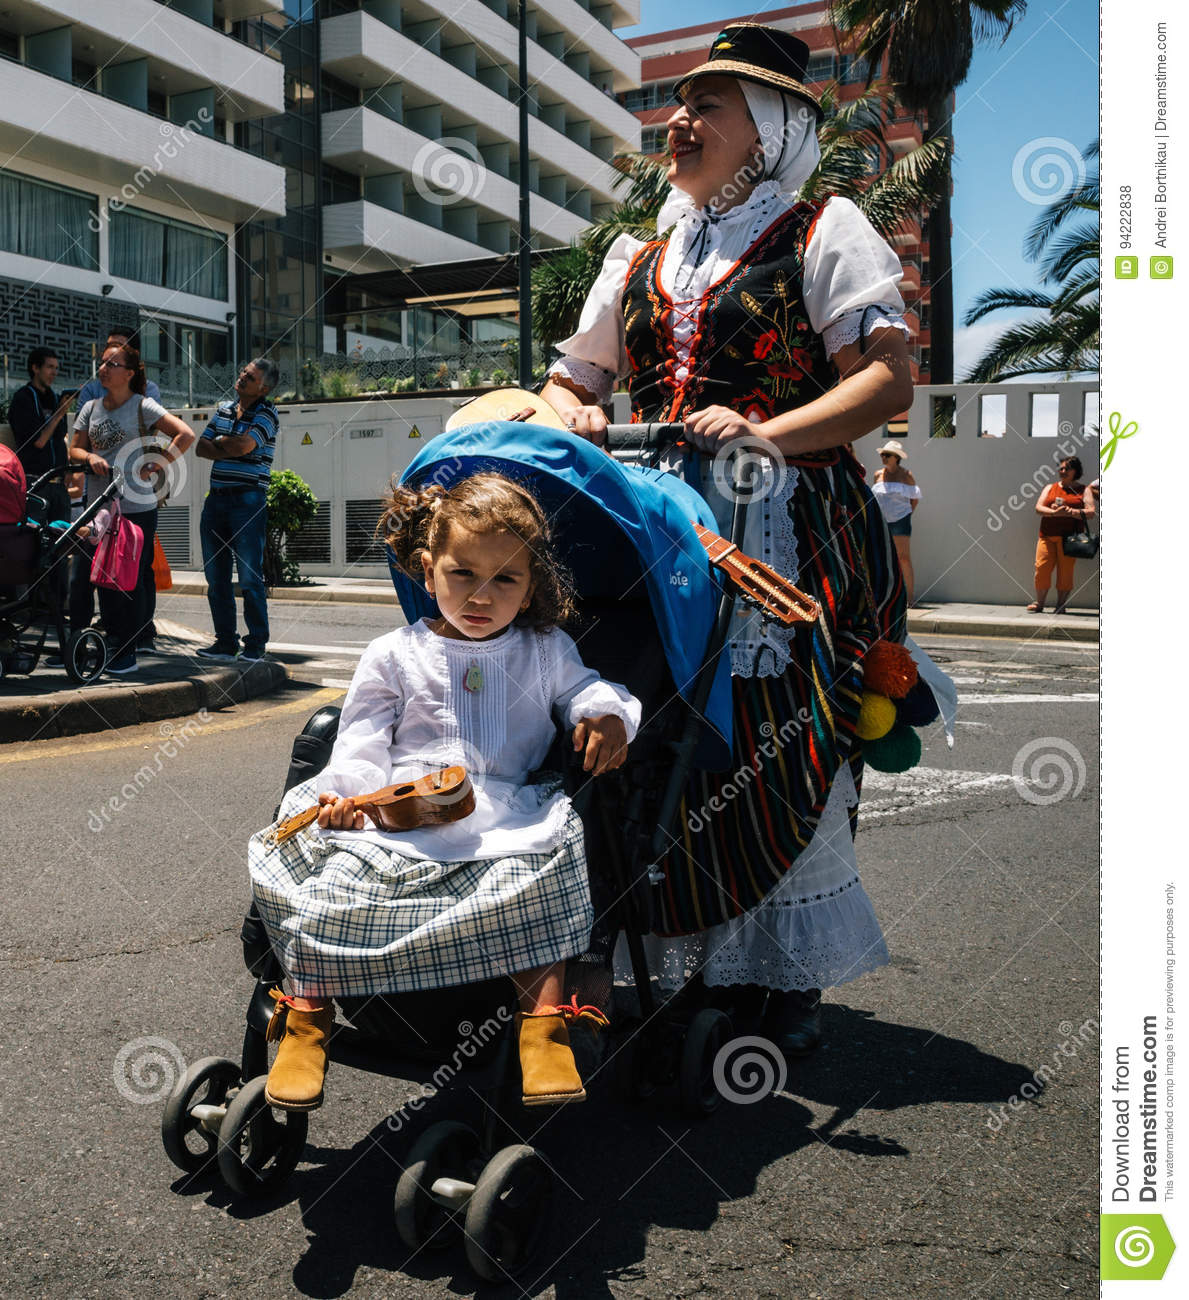 Local residents of Tenerife celebrate the Day of the Canary Islands, Tenerife, Spain